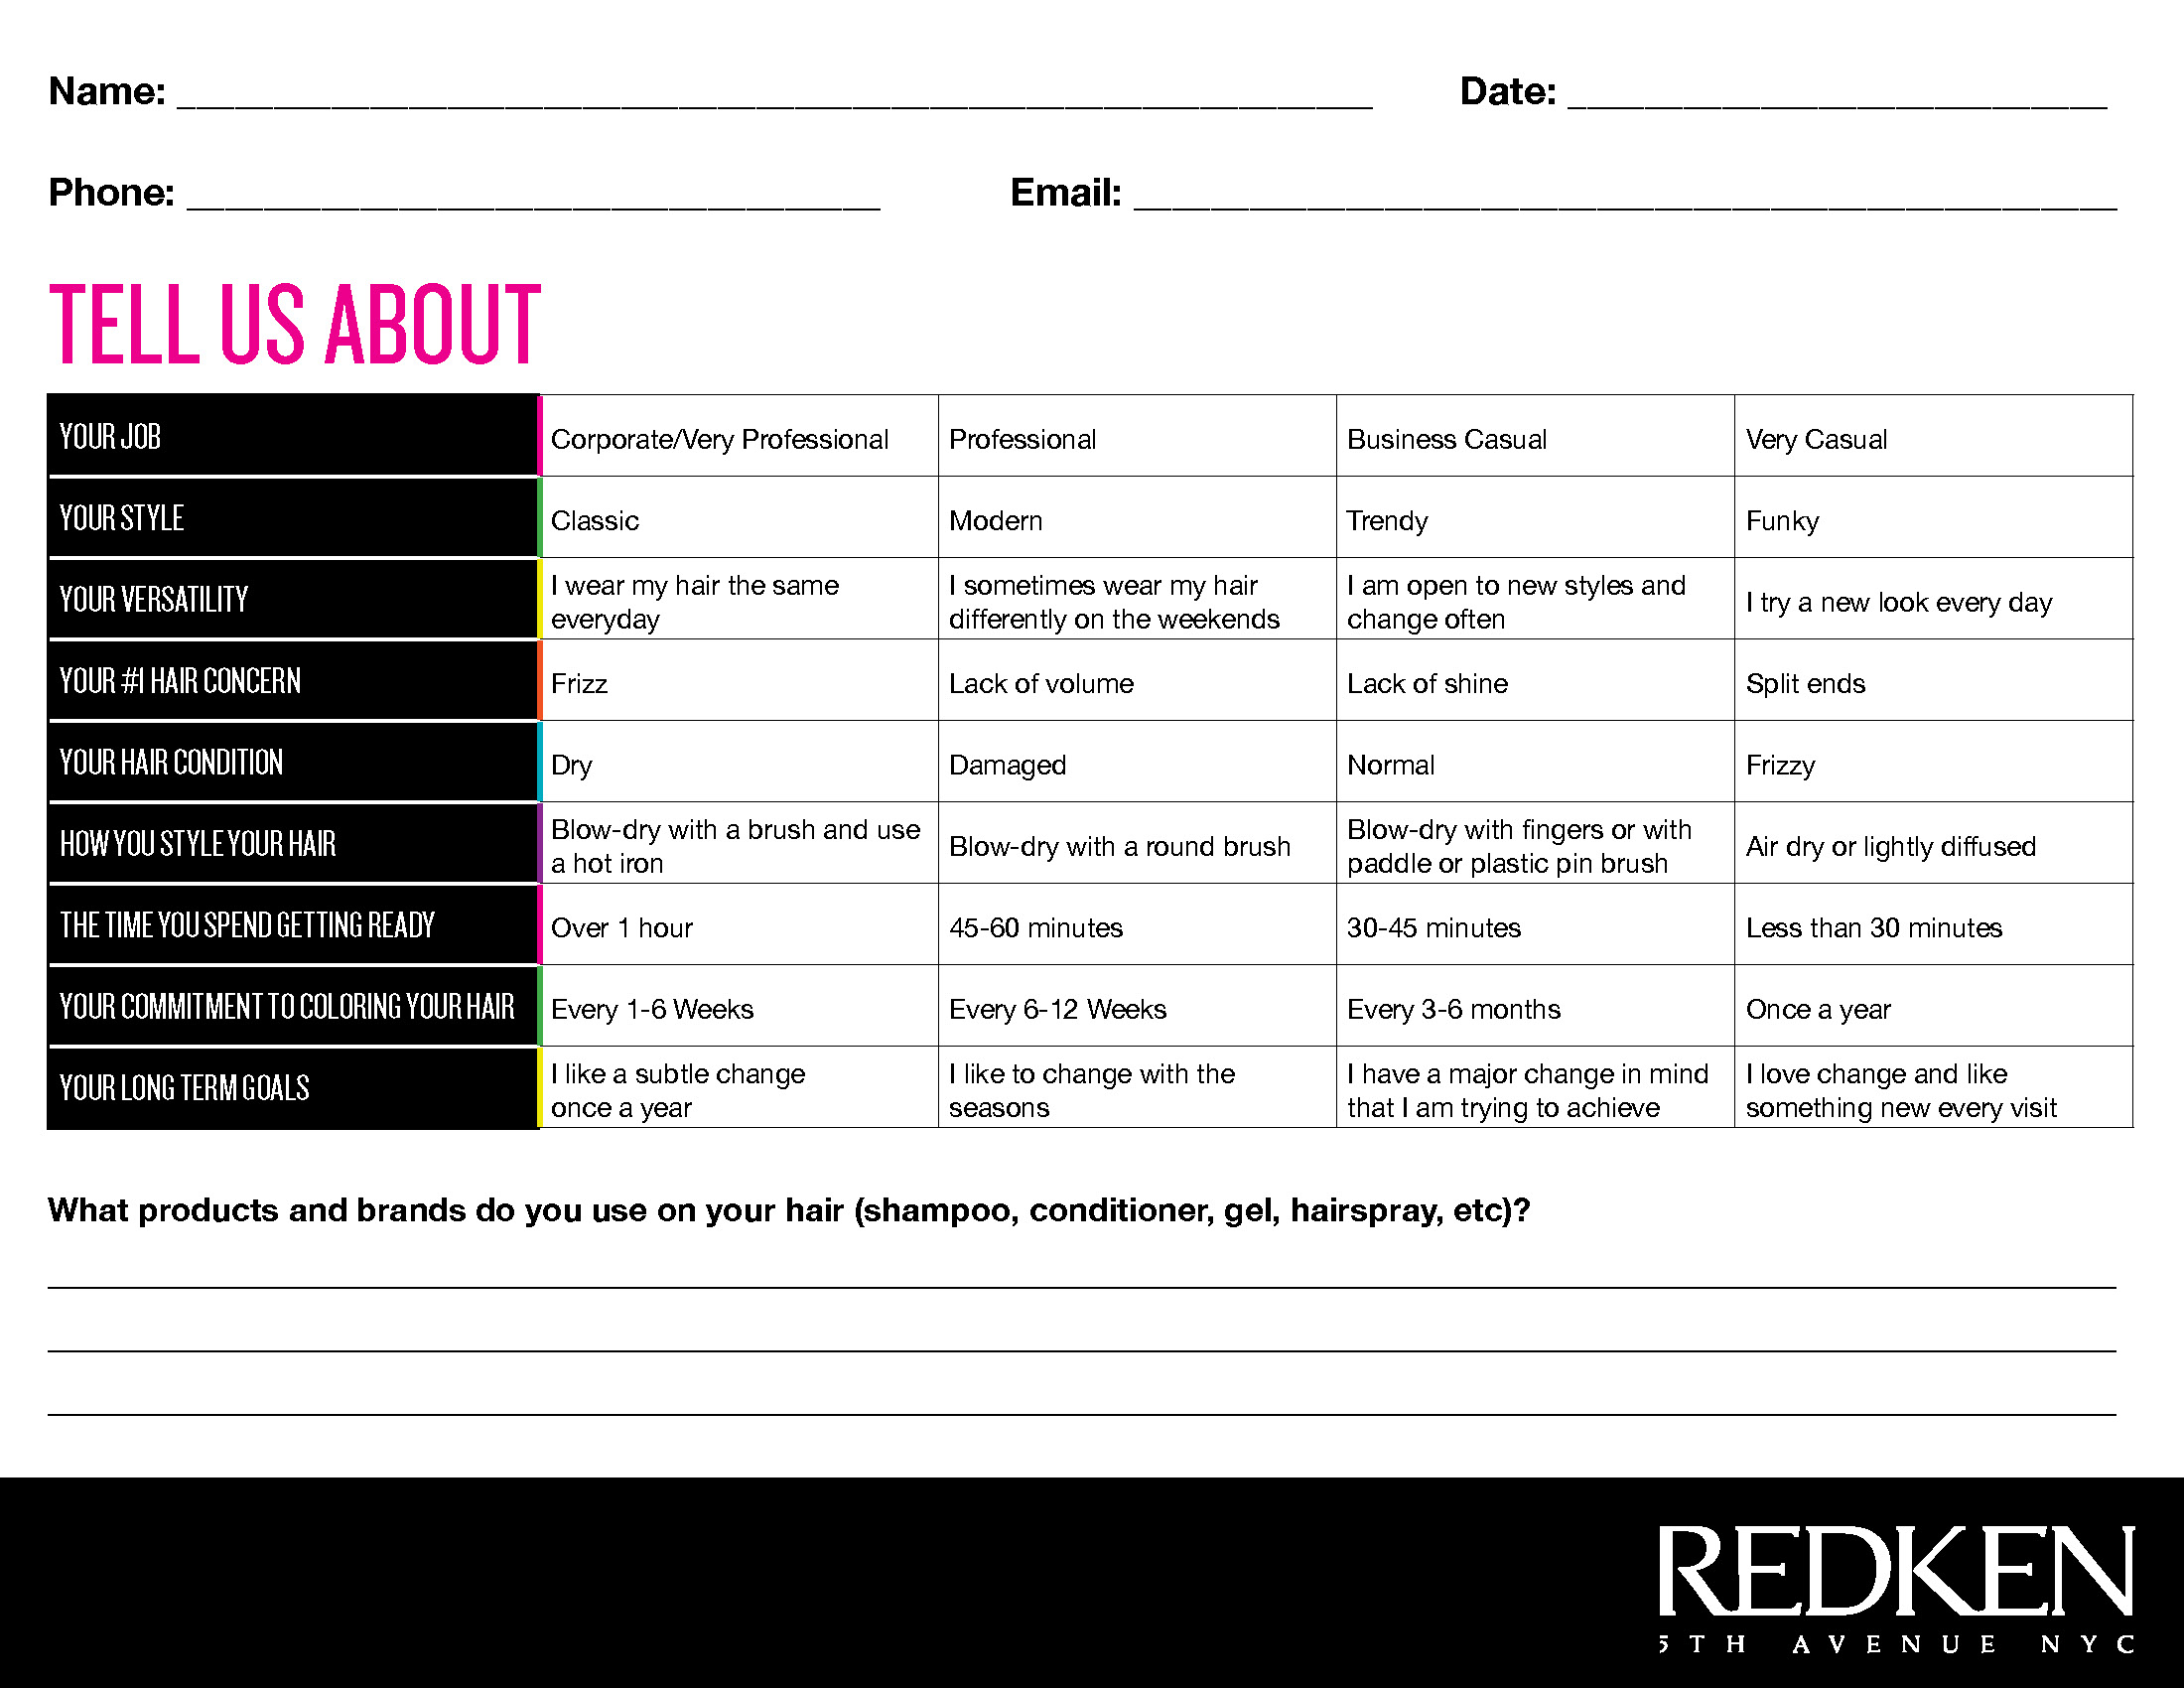 redken gloss color chart search results fun coloring pages